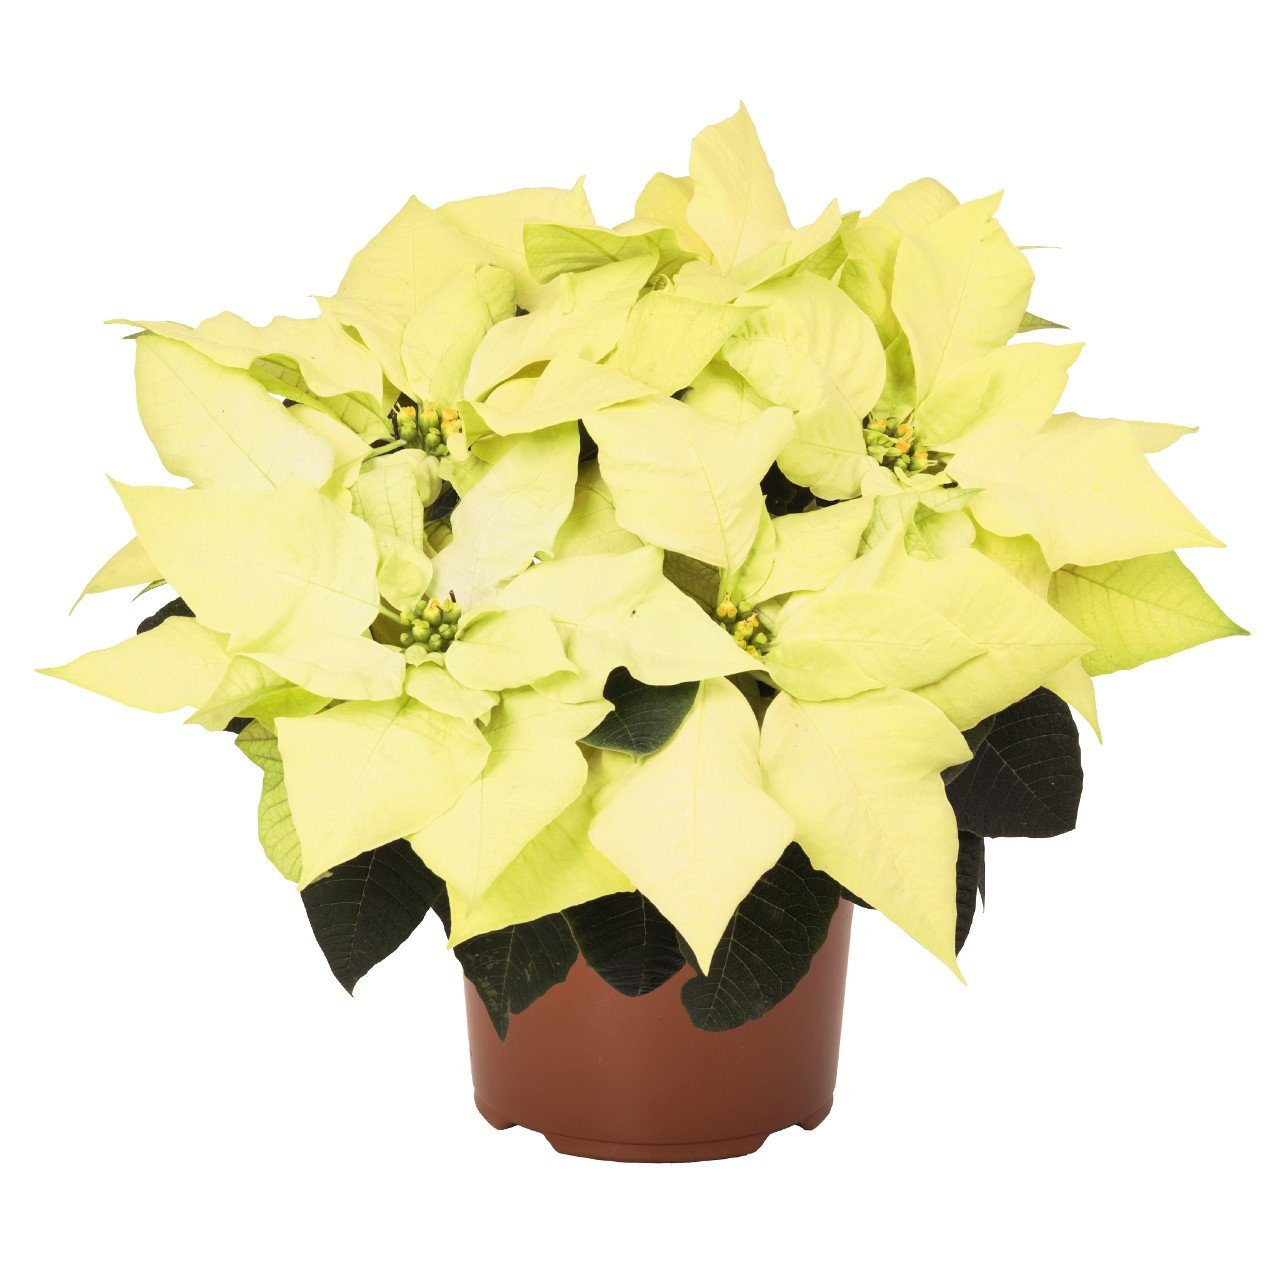 Green Envy Poinsettia Christmas Holiday Flower